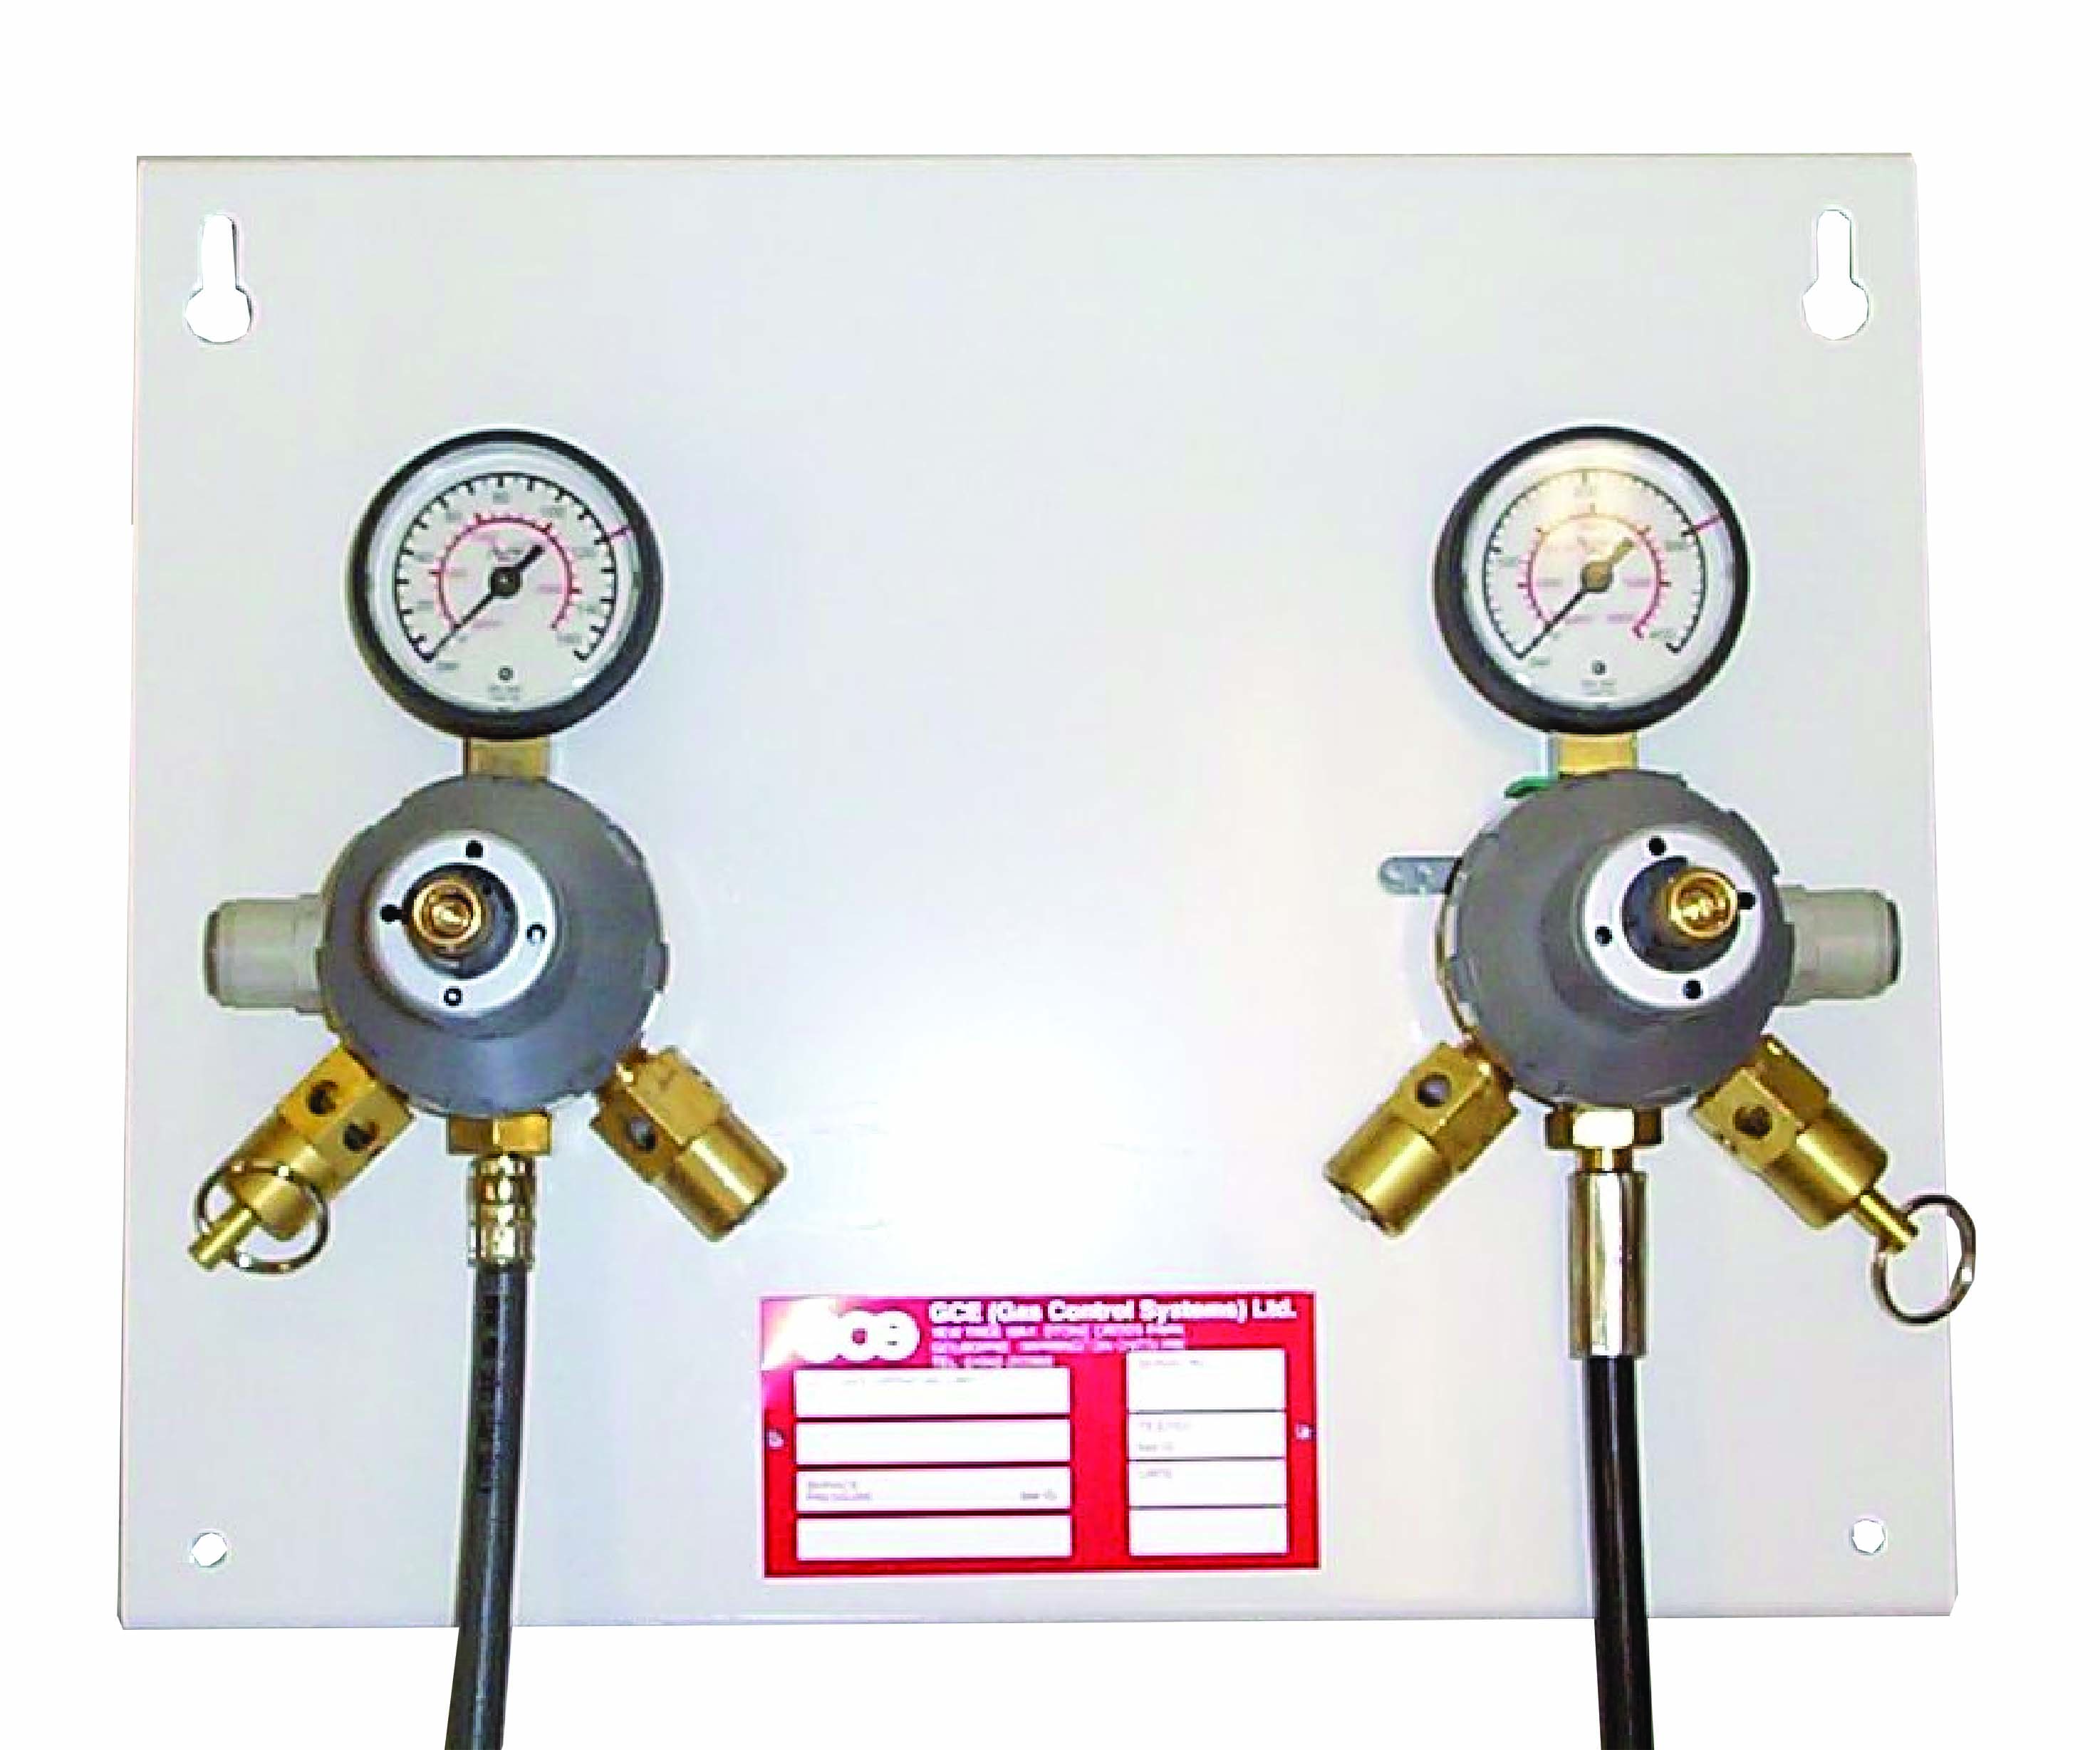 MIXED GAS REGULATOR WITH CO2 REGULATOR PANEL page image